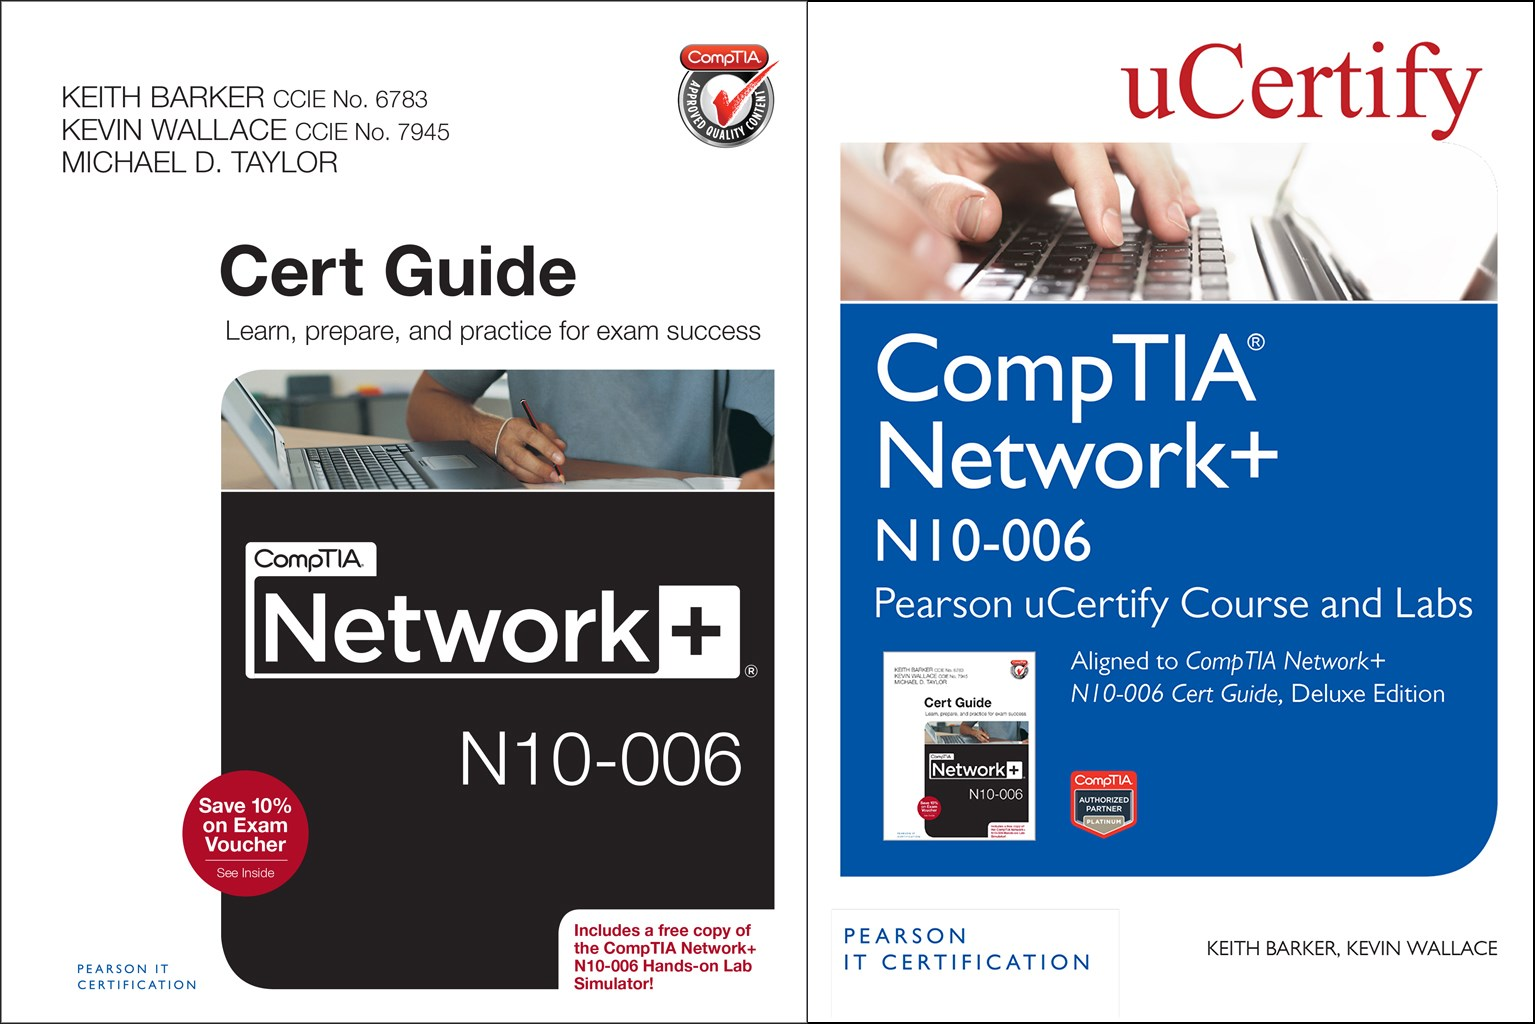 CompTIA Network+ N10-006 Pearson uCertify Course and Labs and Textbook Bundle